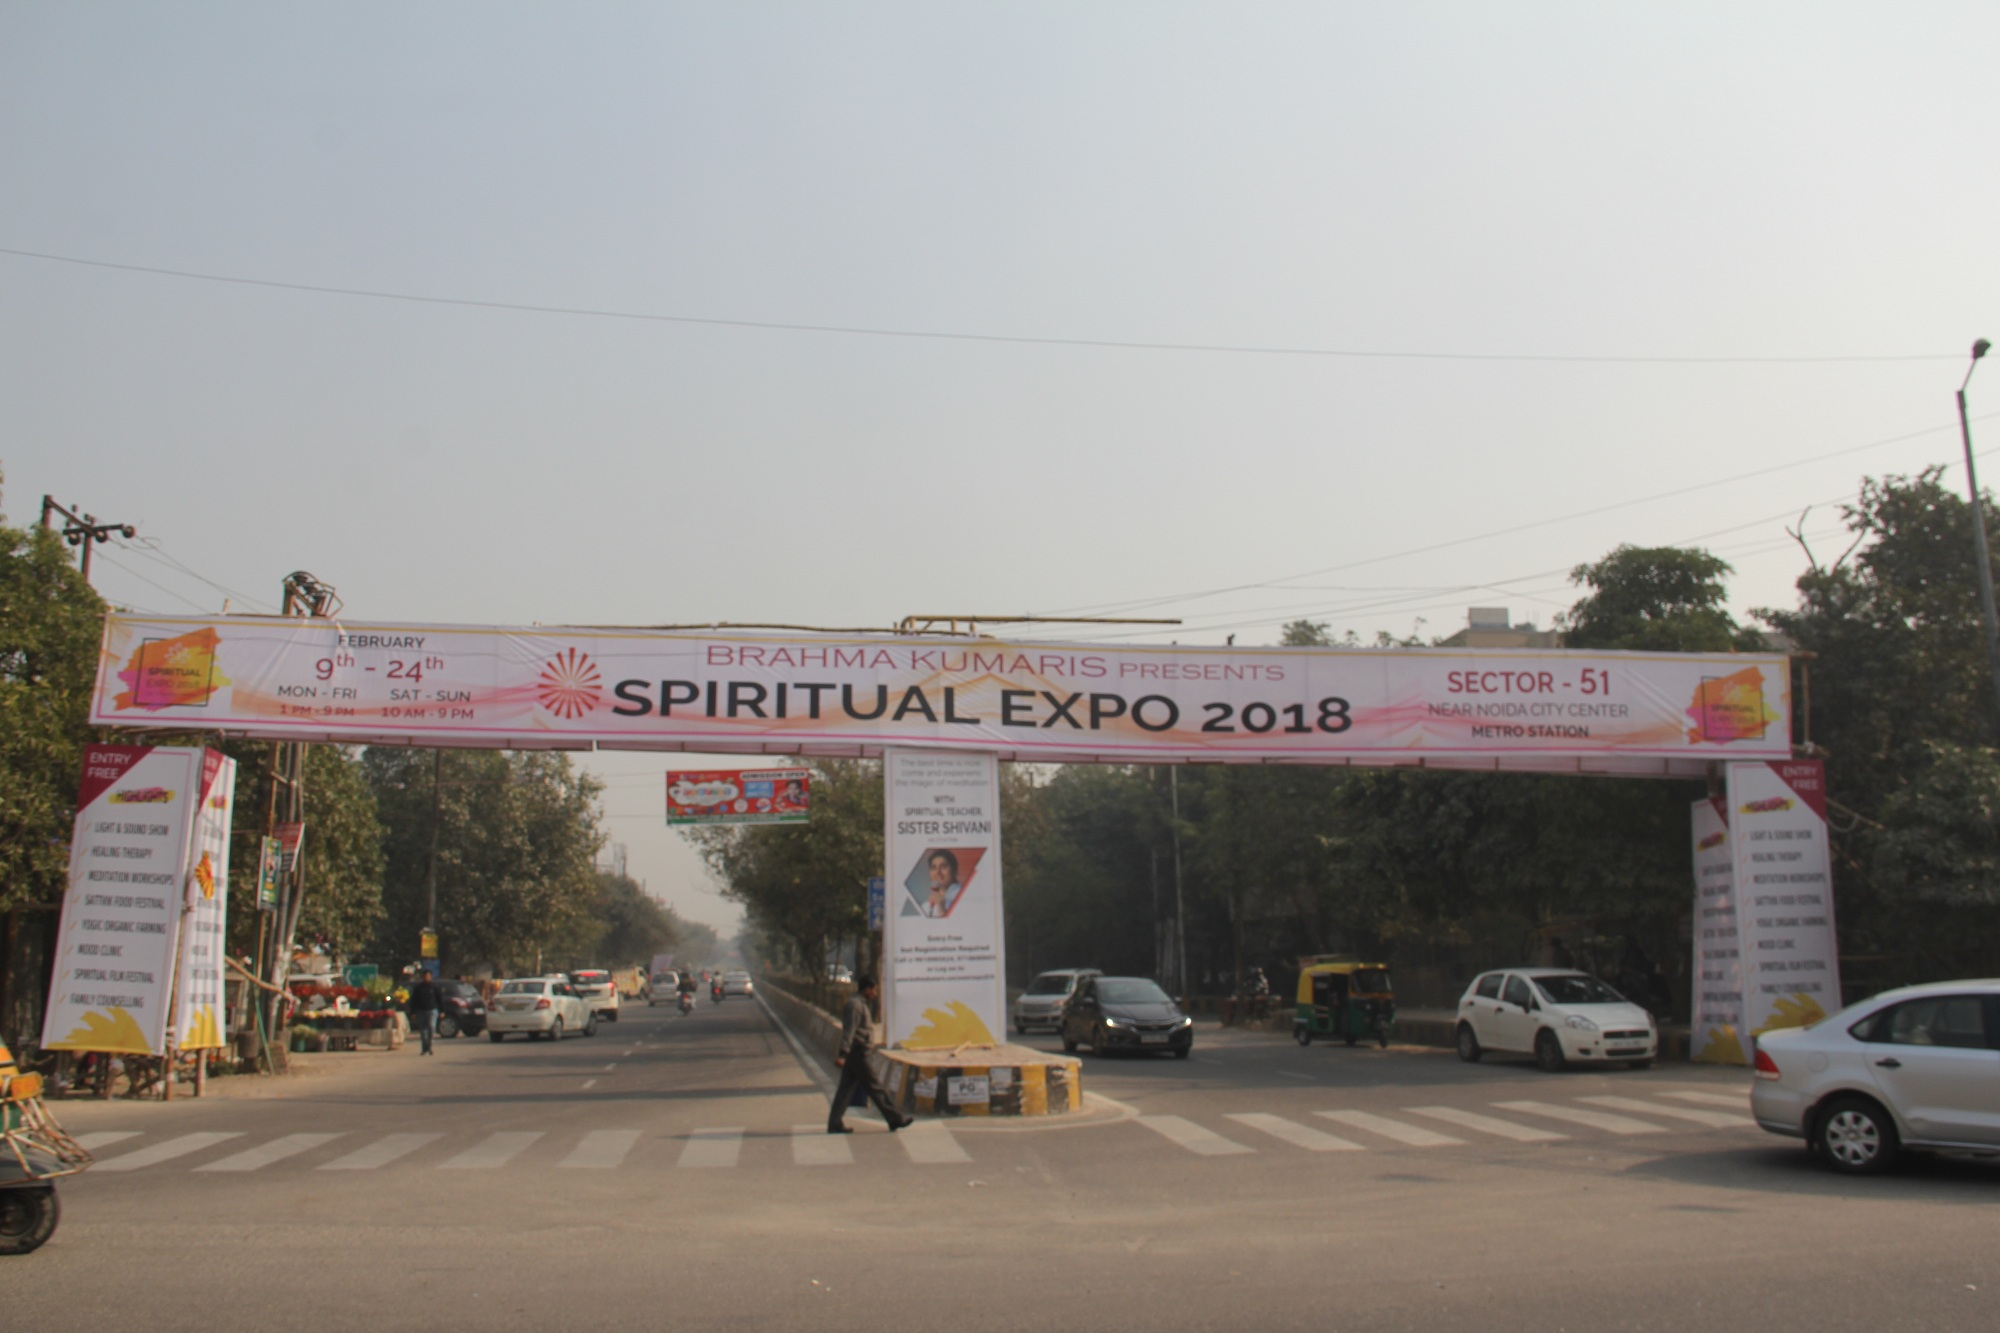 SPIRITUAL EXPO 2018 – 9th to 24th Feb 2018